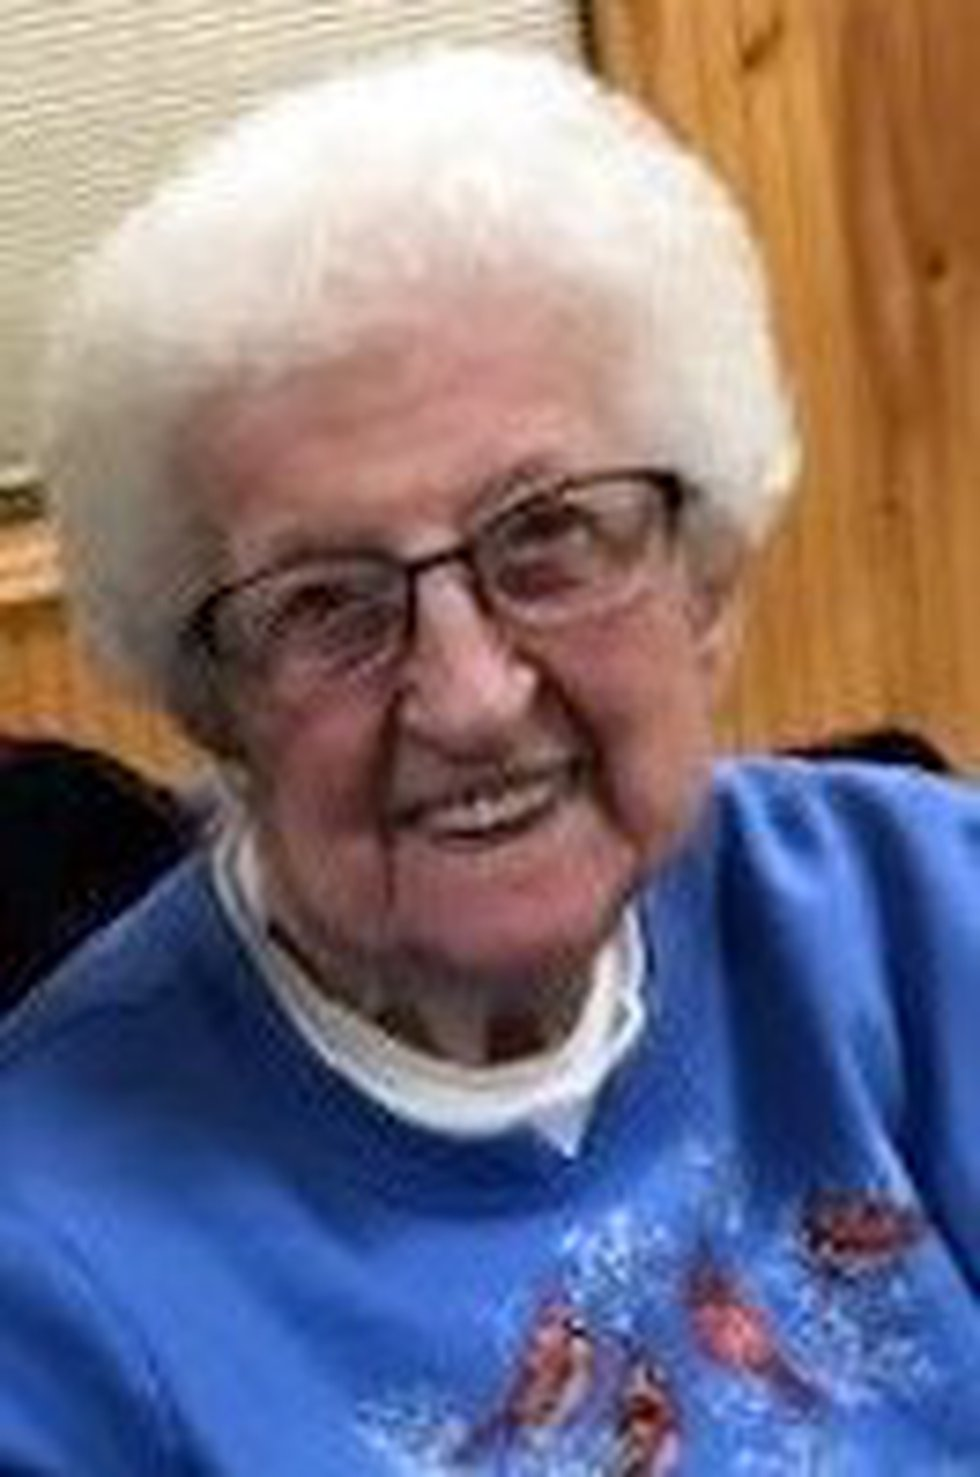 Mrs. Gonyou passed away at her home on Sunday Oct 10, 2021 surrounded by her loving family and...